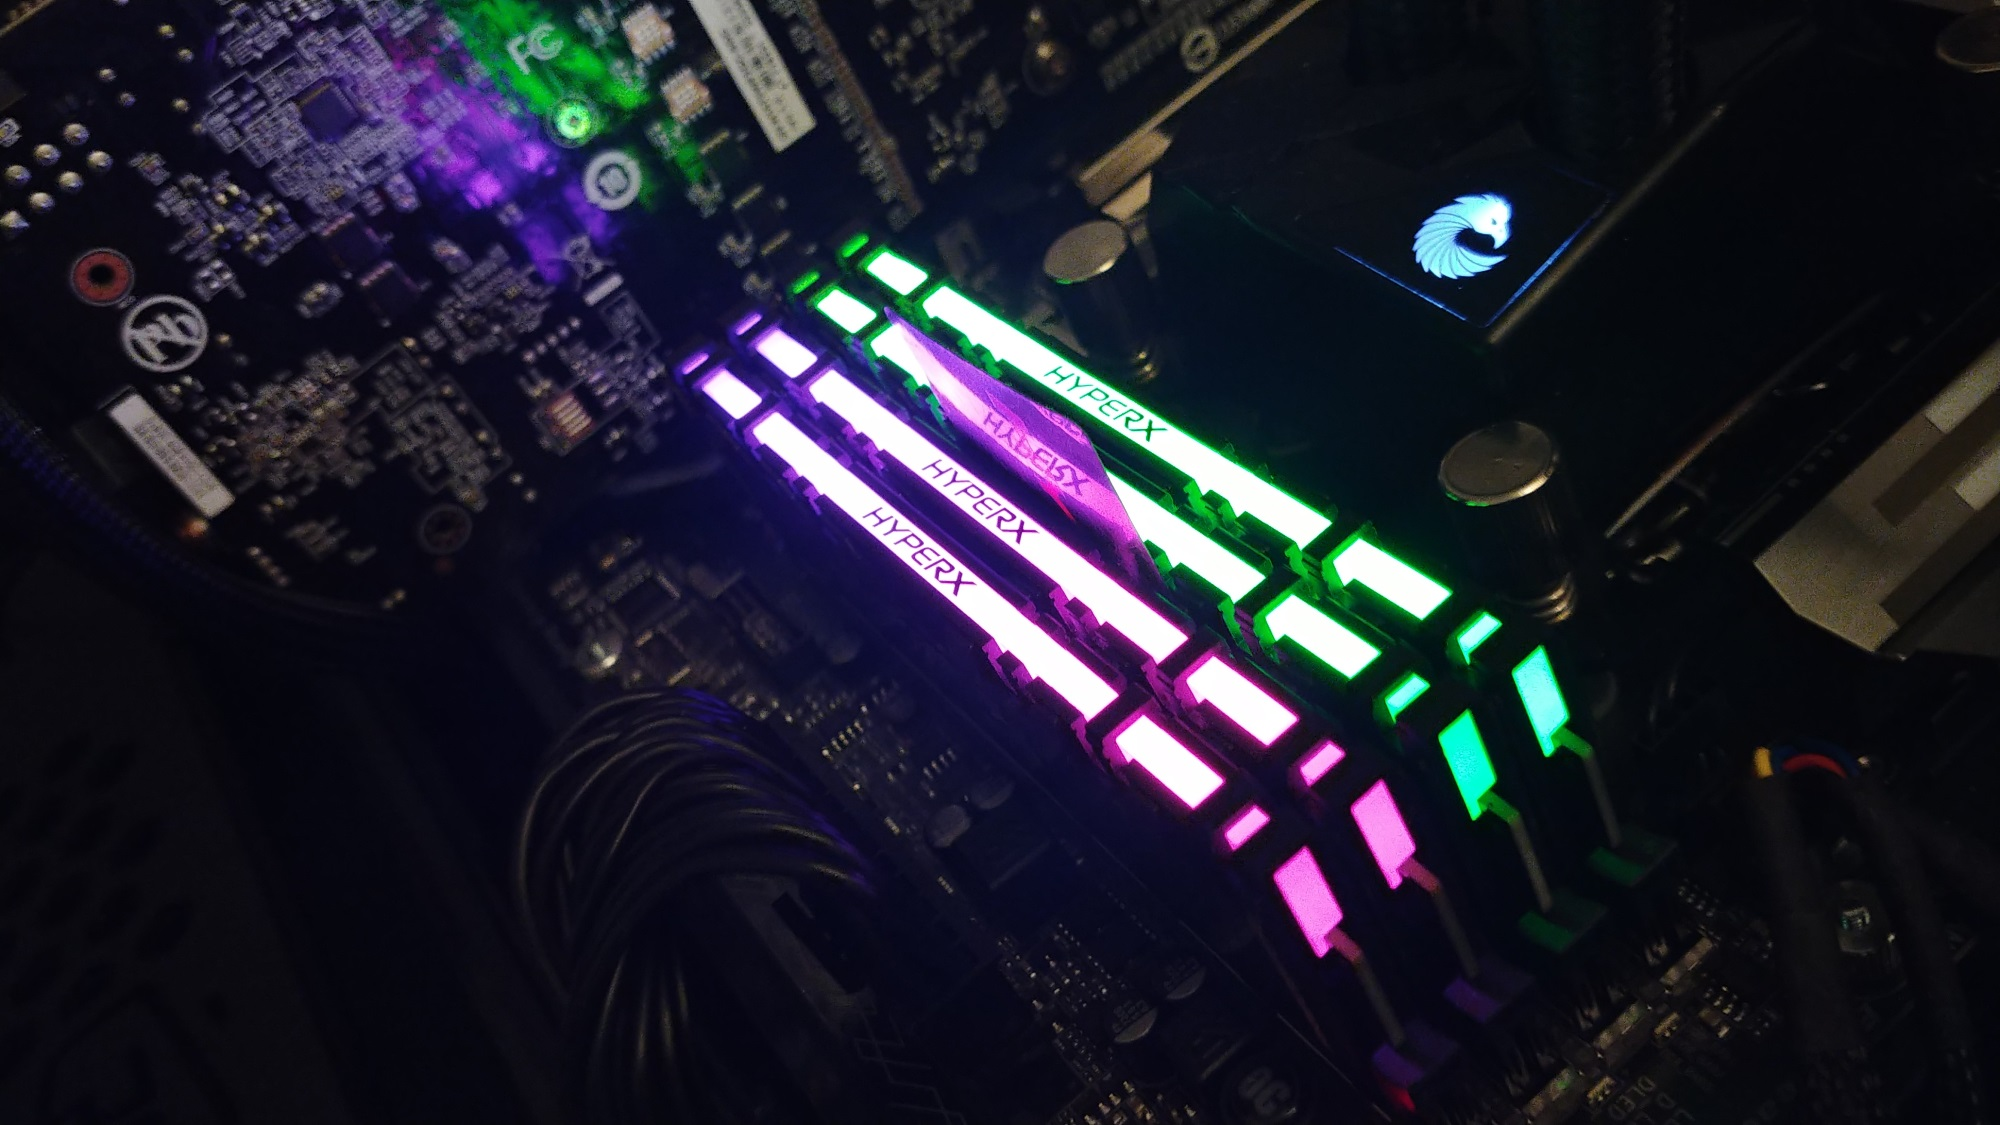 Hyperx At Ces 2018 Predator Ddr4 With Ir Sensors For